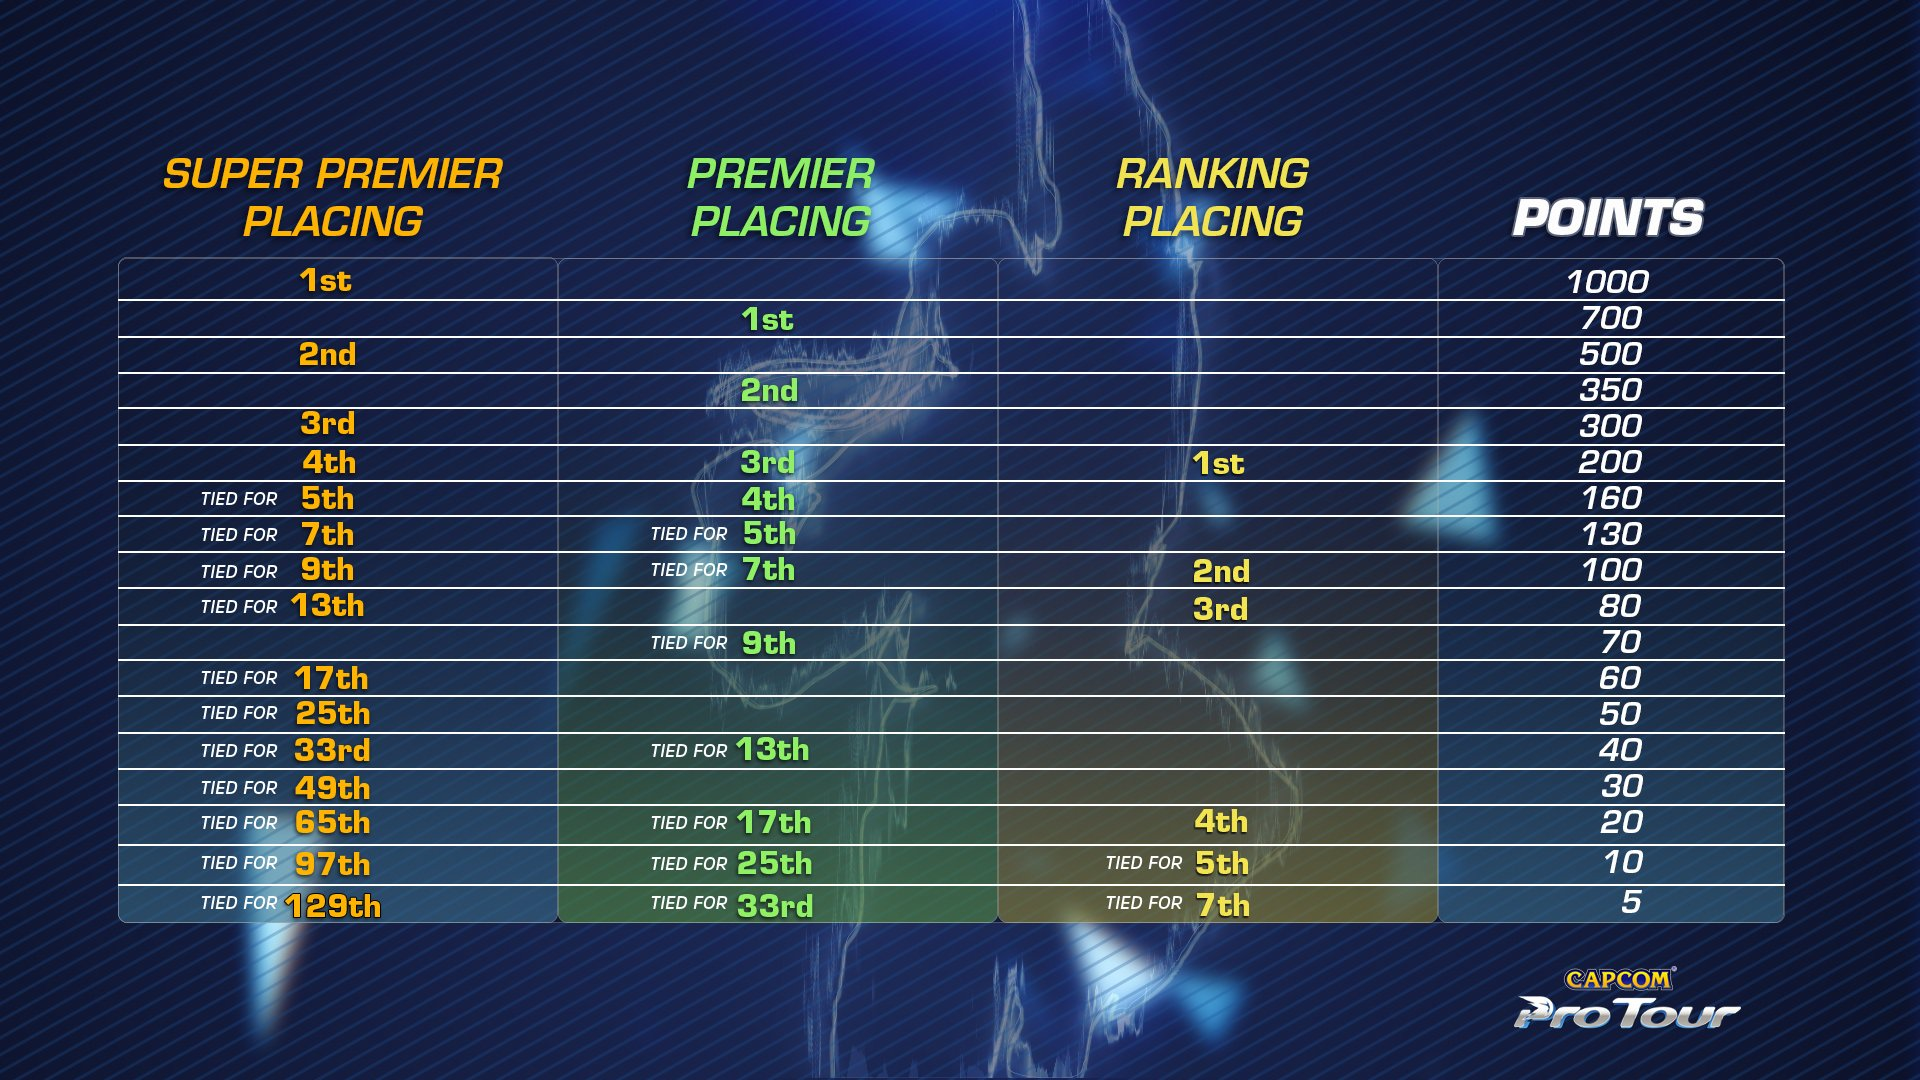 Capcom Pro Tour 2019 point values